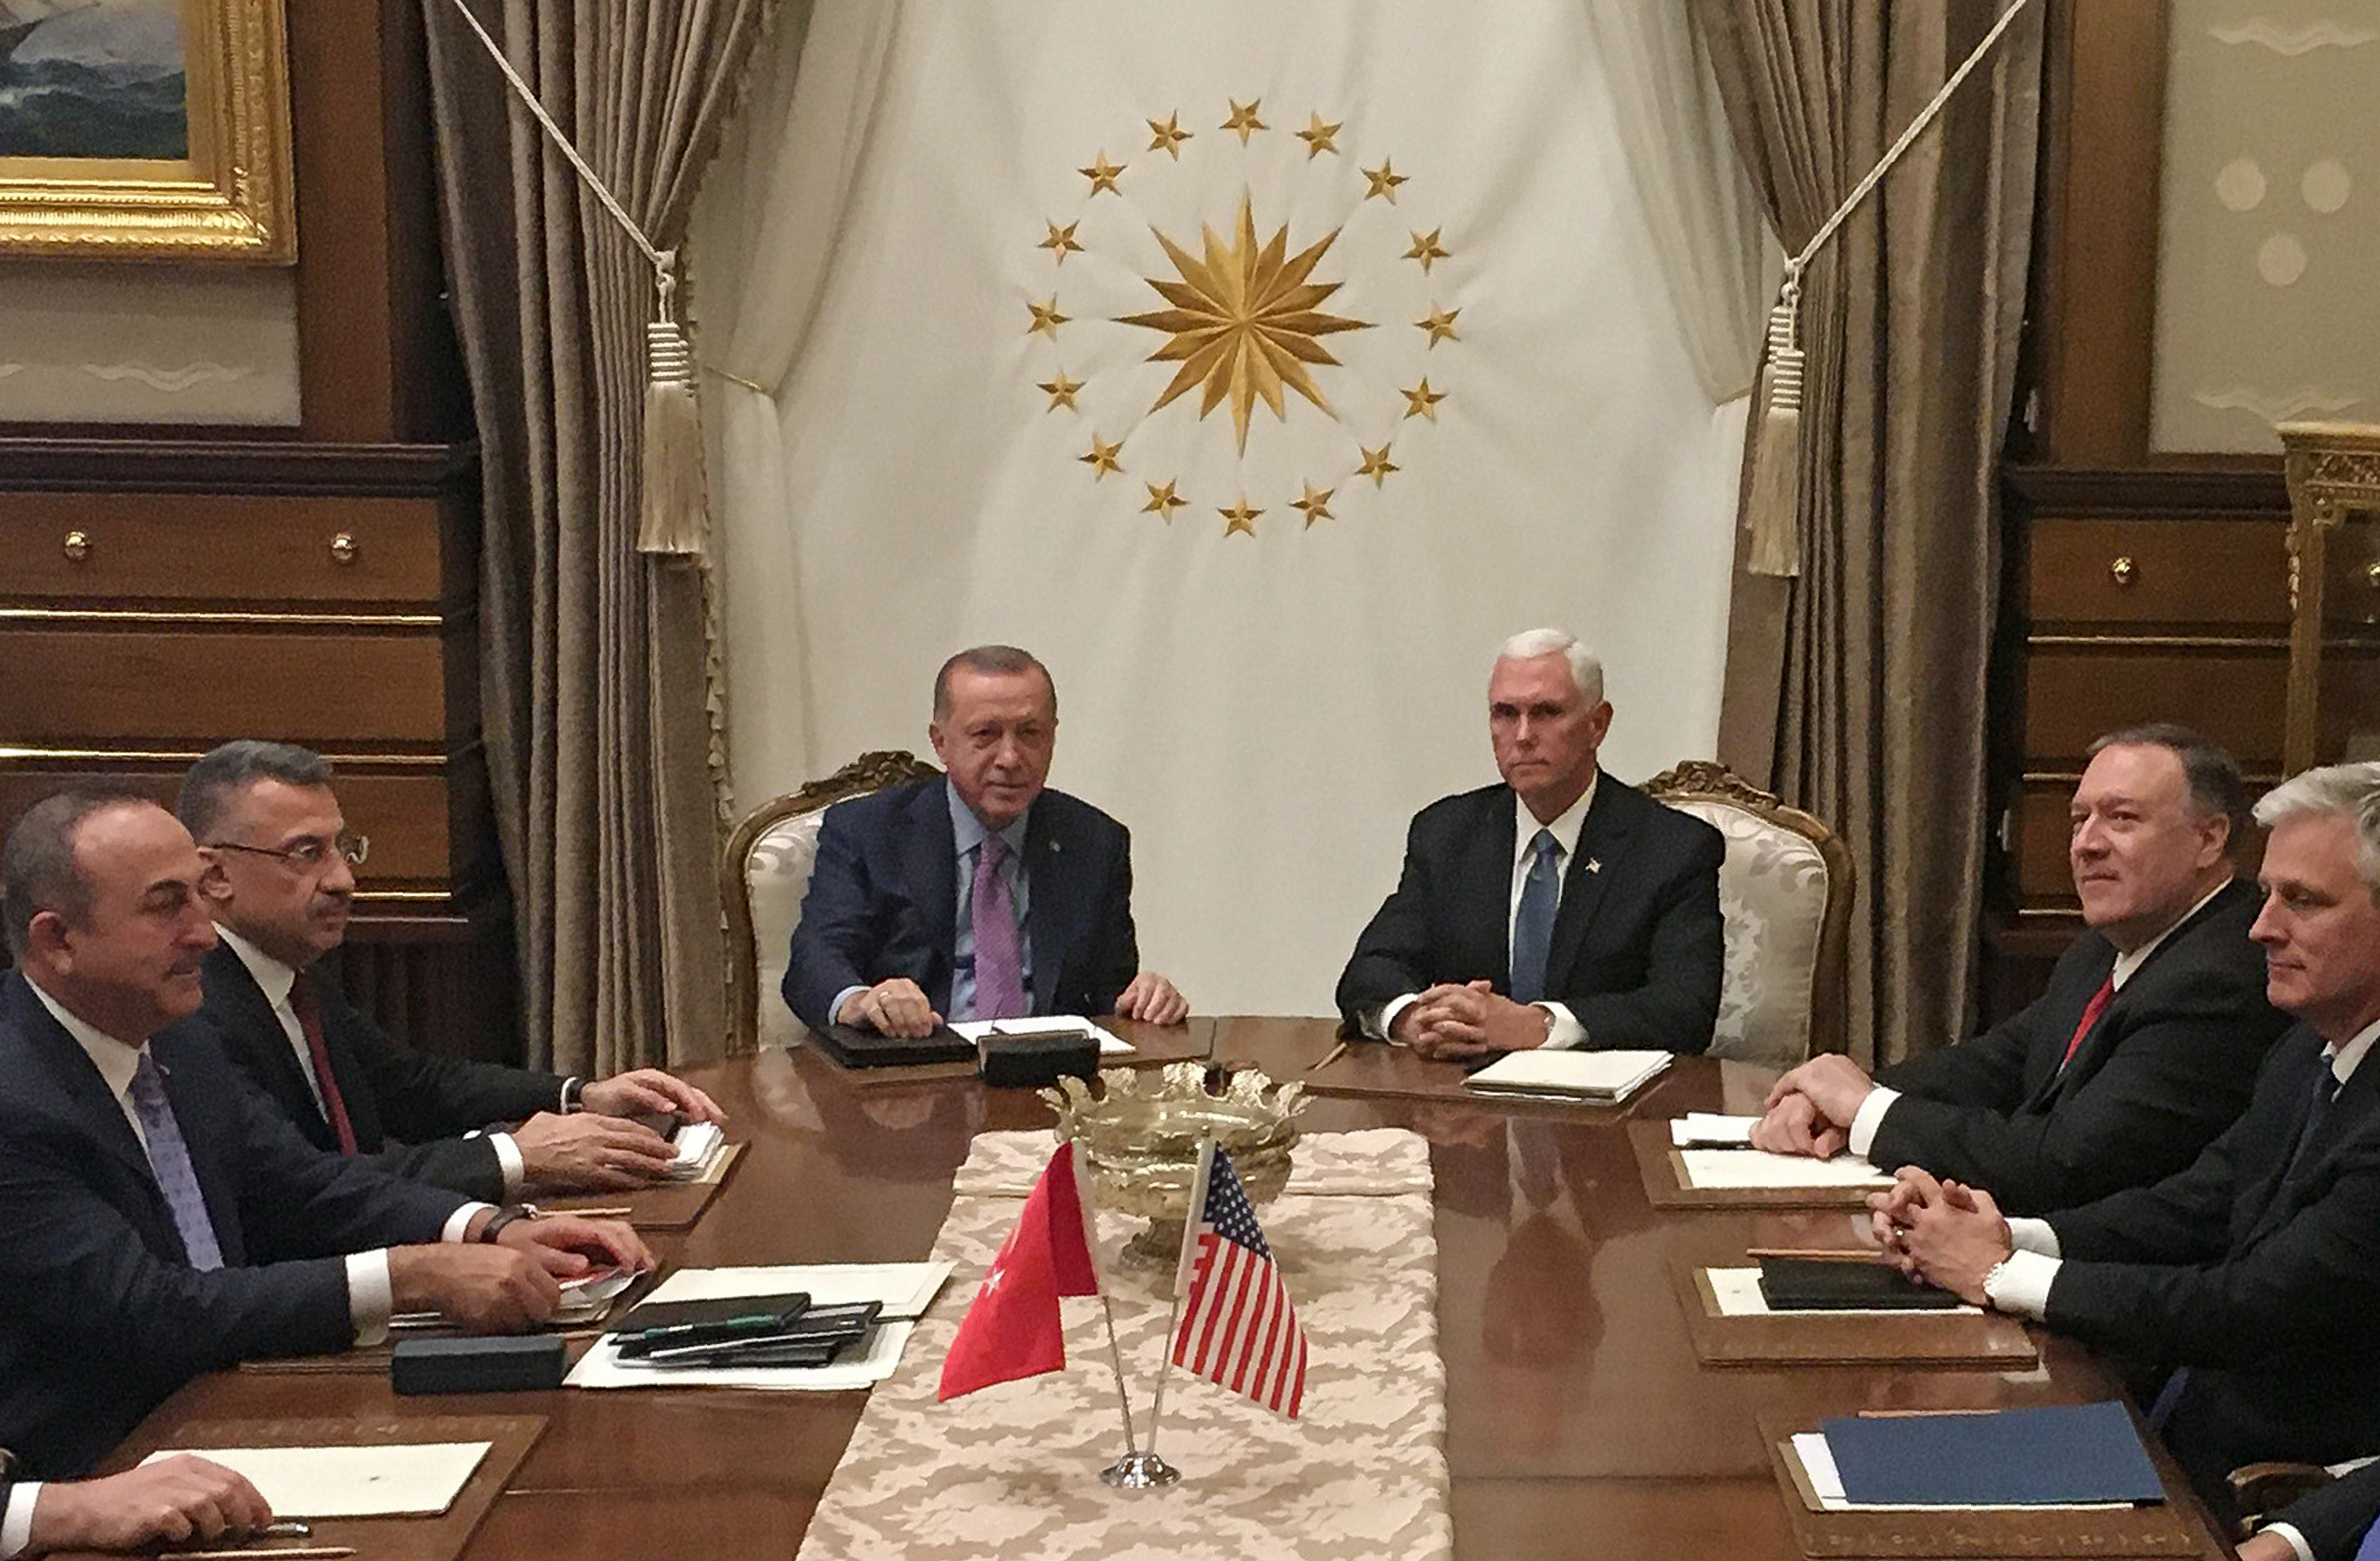 Turkish President Recep Tayyip Erdogan (C-L) and Vice President Mike Pence (C-R), joined by Secretary of State Mike Pompeo (4R), Turkish Vice President Fuat Oktay (4L), Turkish Foreign Minister Mevlut Cavusoglu (3L) and senior aides meet at the presidential complex in Ankara, Turkey, on Oct.17, 2019.